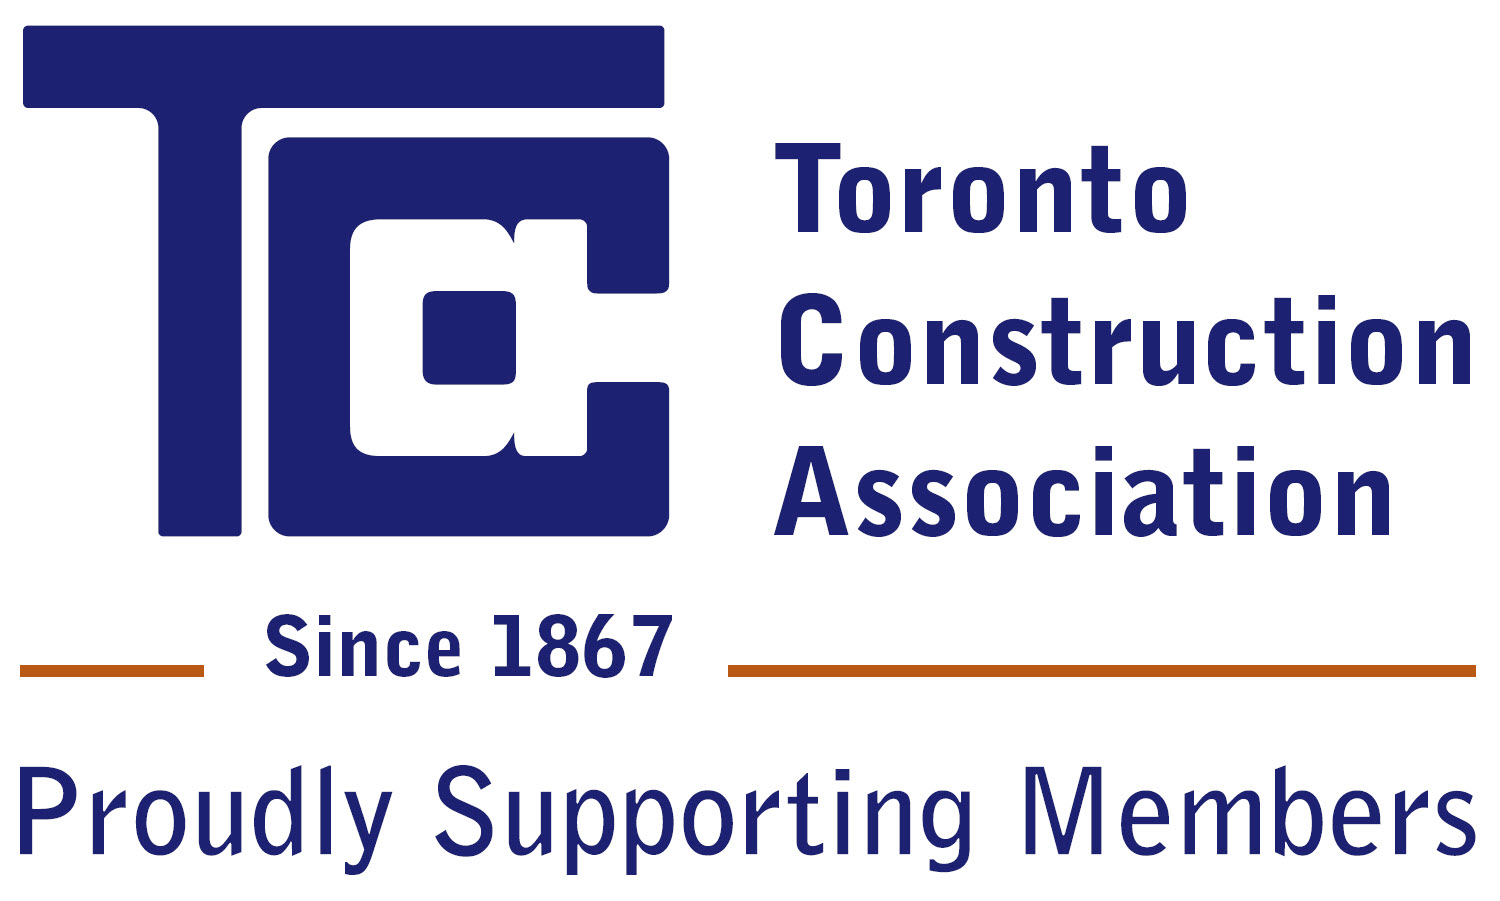 2-TCA-Proudly Supporting Members Logo